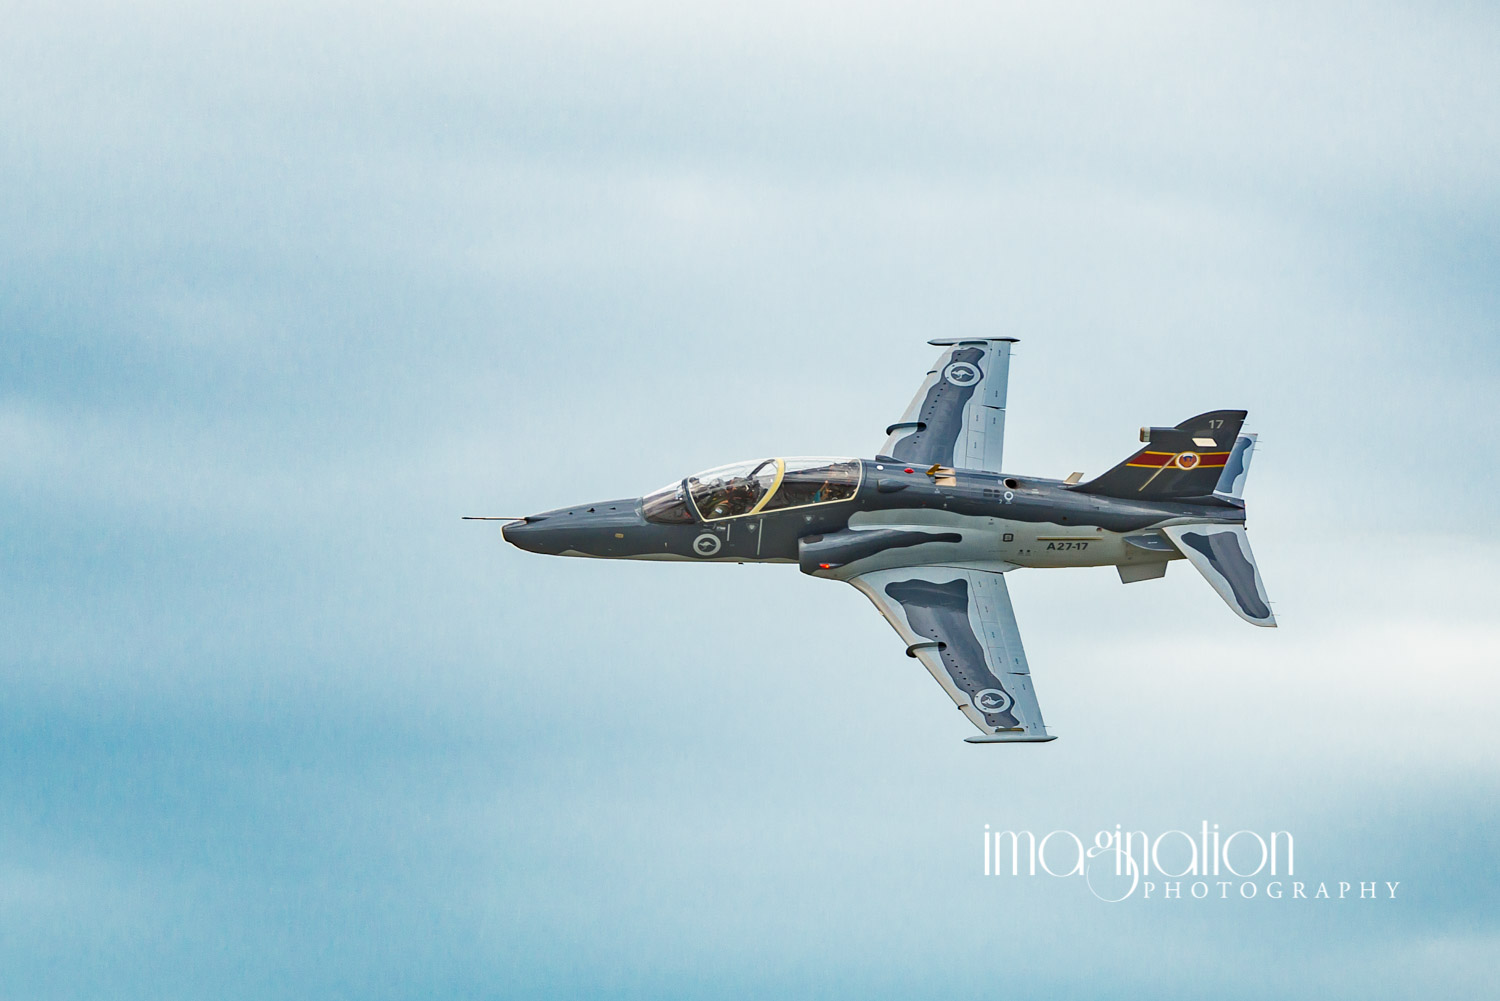 Townsville T150 Airshow – Part 2 | Imagination Photography